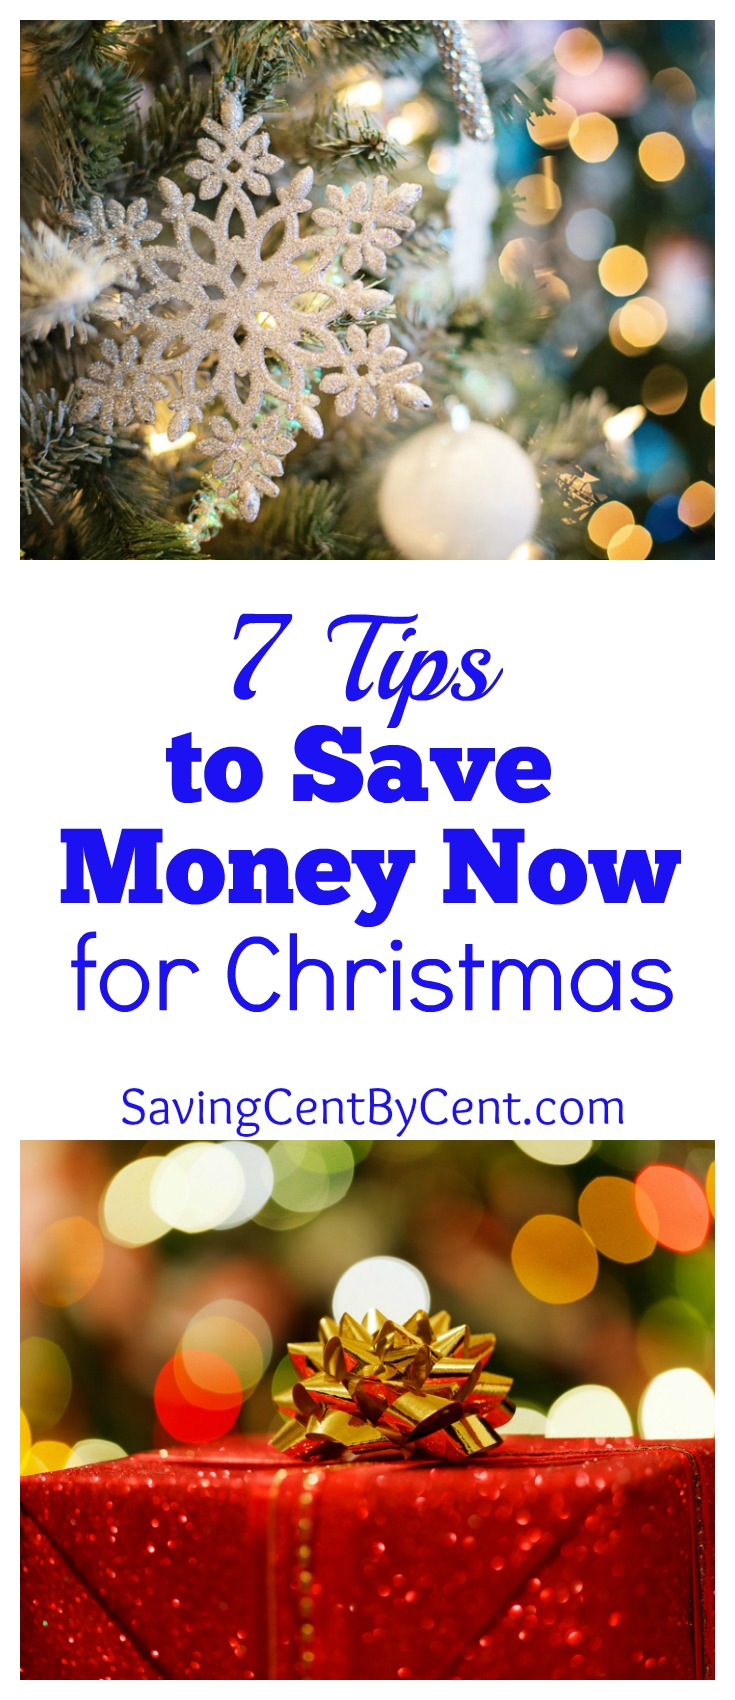 7 Tips to Save Money Now for Christmas